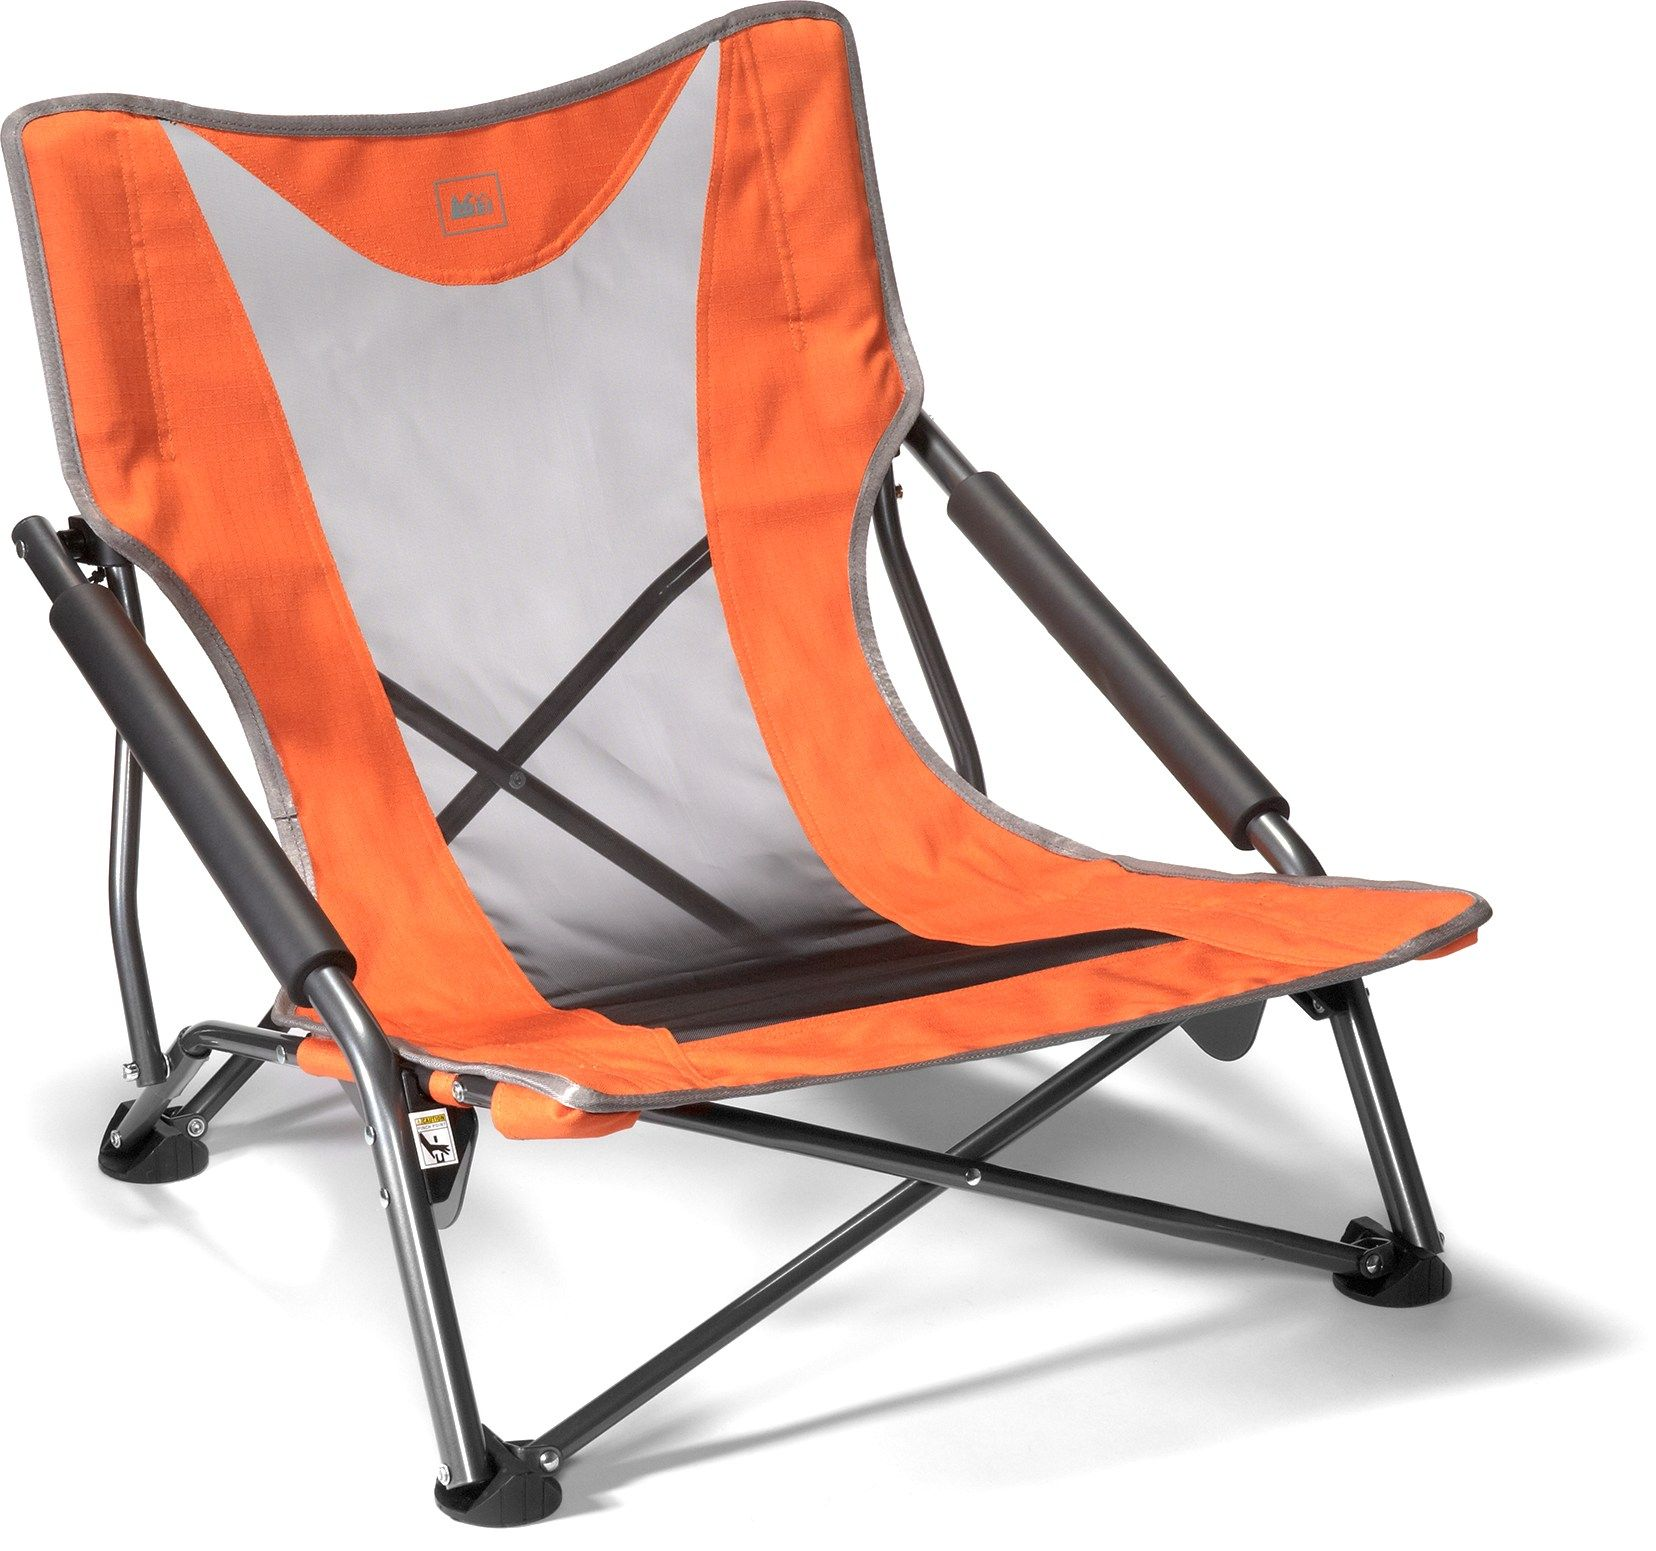 Rei Folding Beach Chair Best Glider Australia Camp Stowaway Low Com Outdoor And Indoor